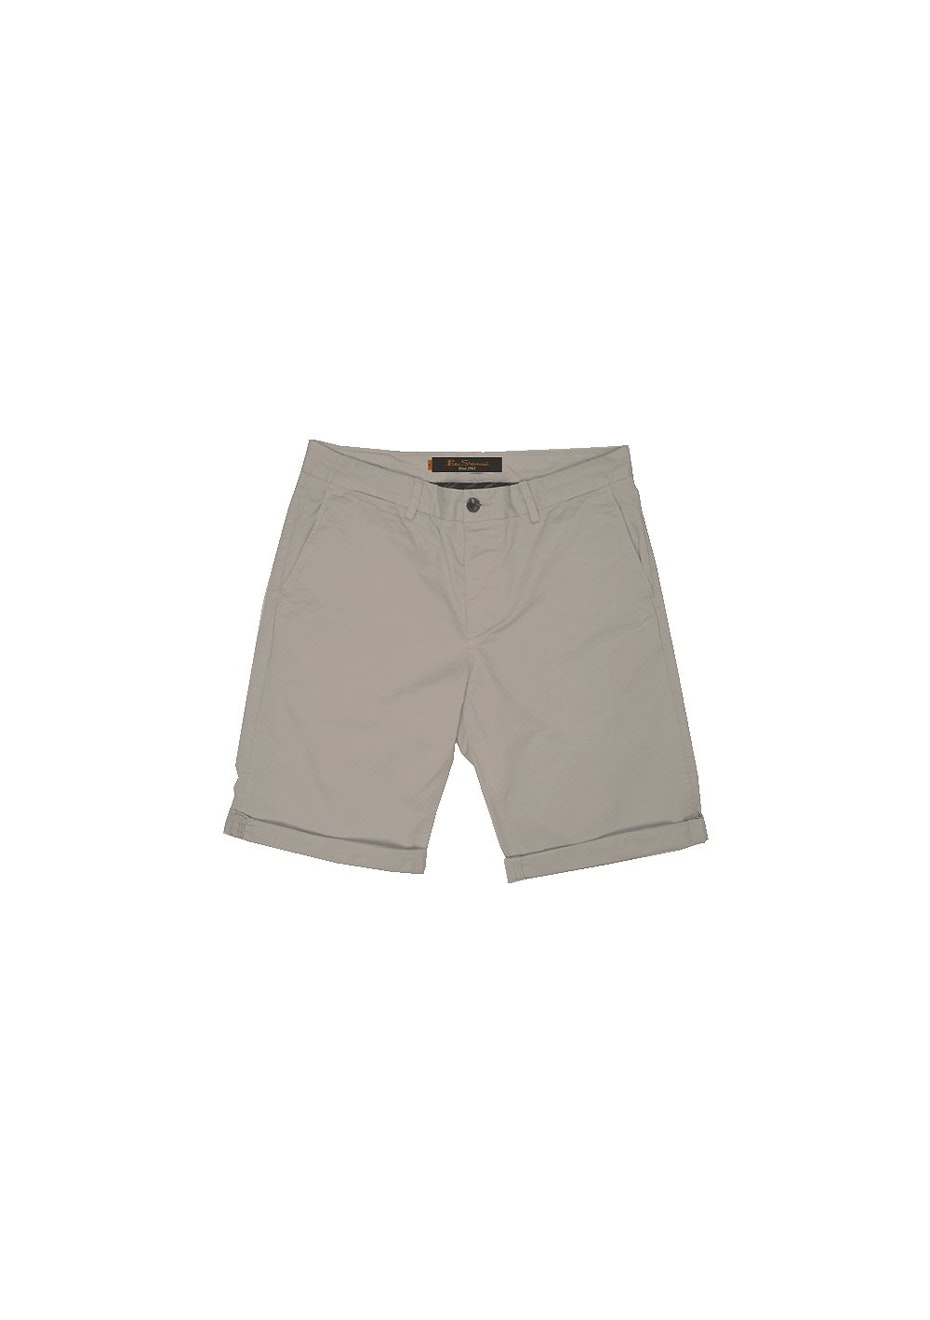 Ben Sherman - Walk Short Sandy Shore